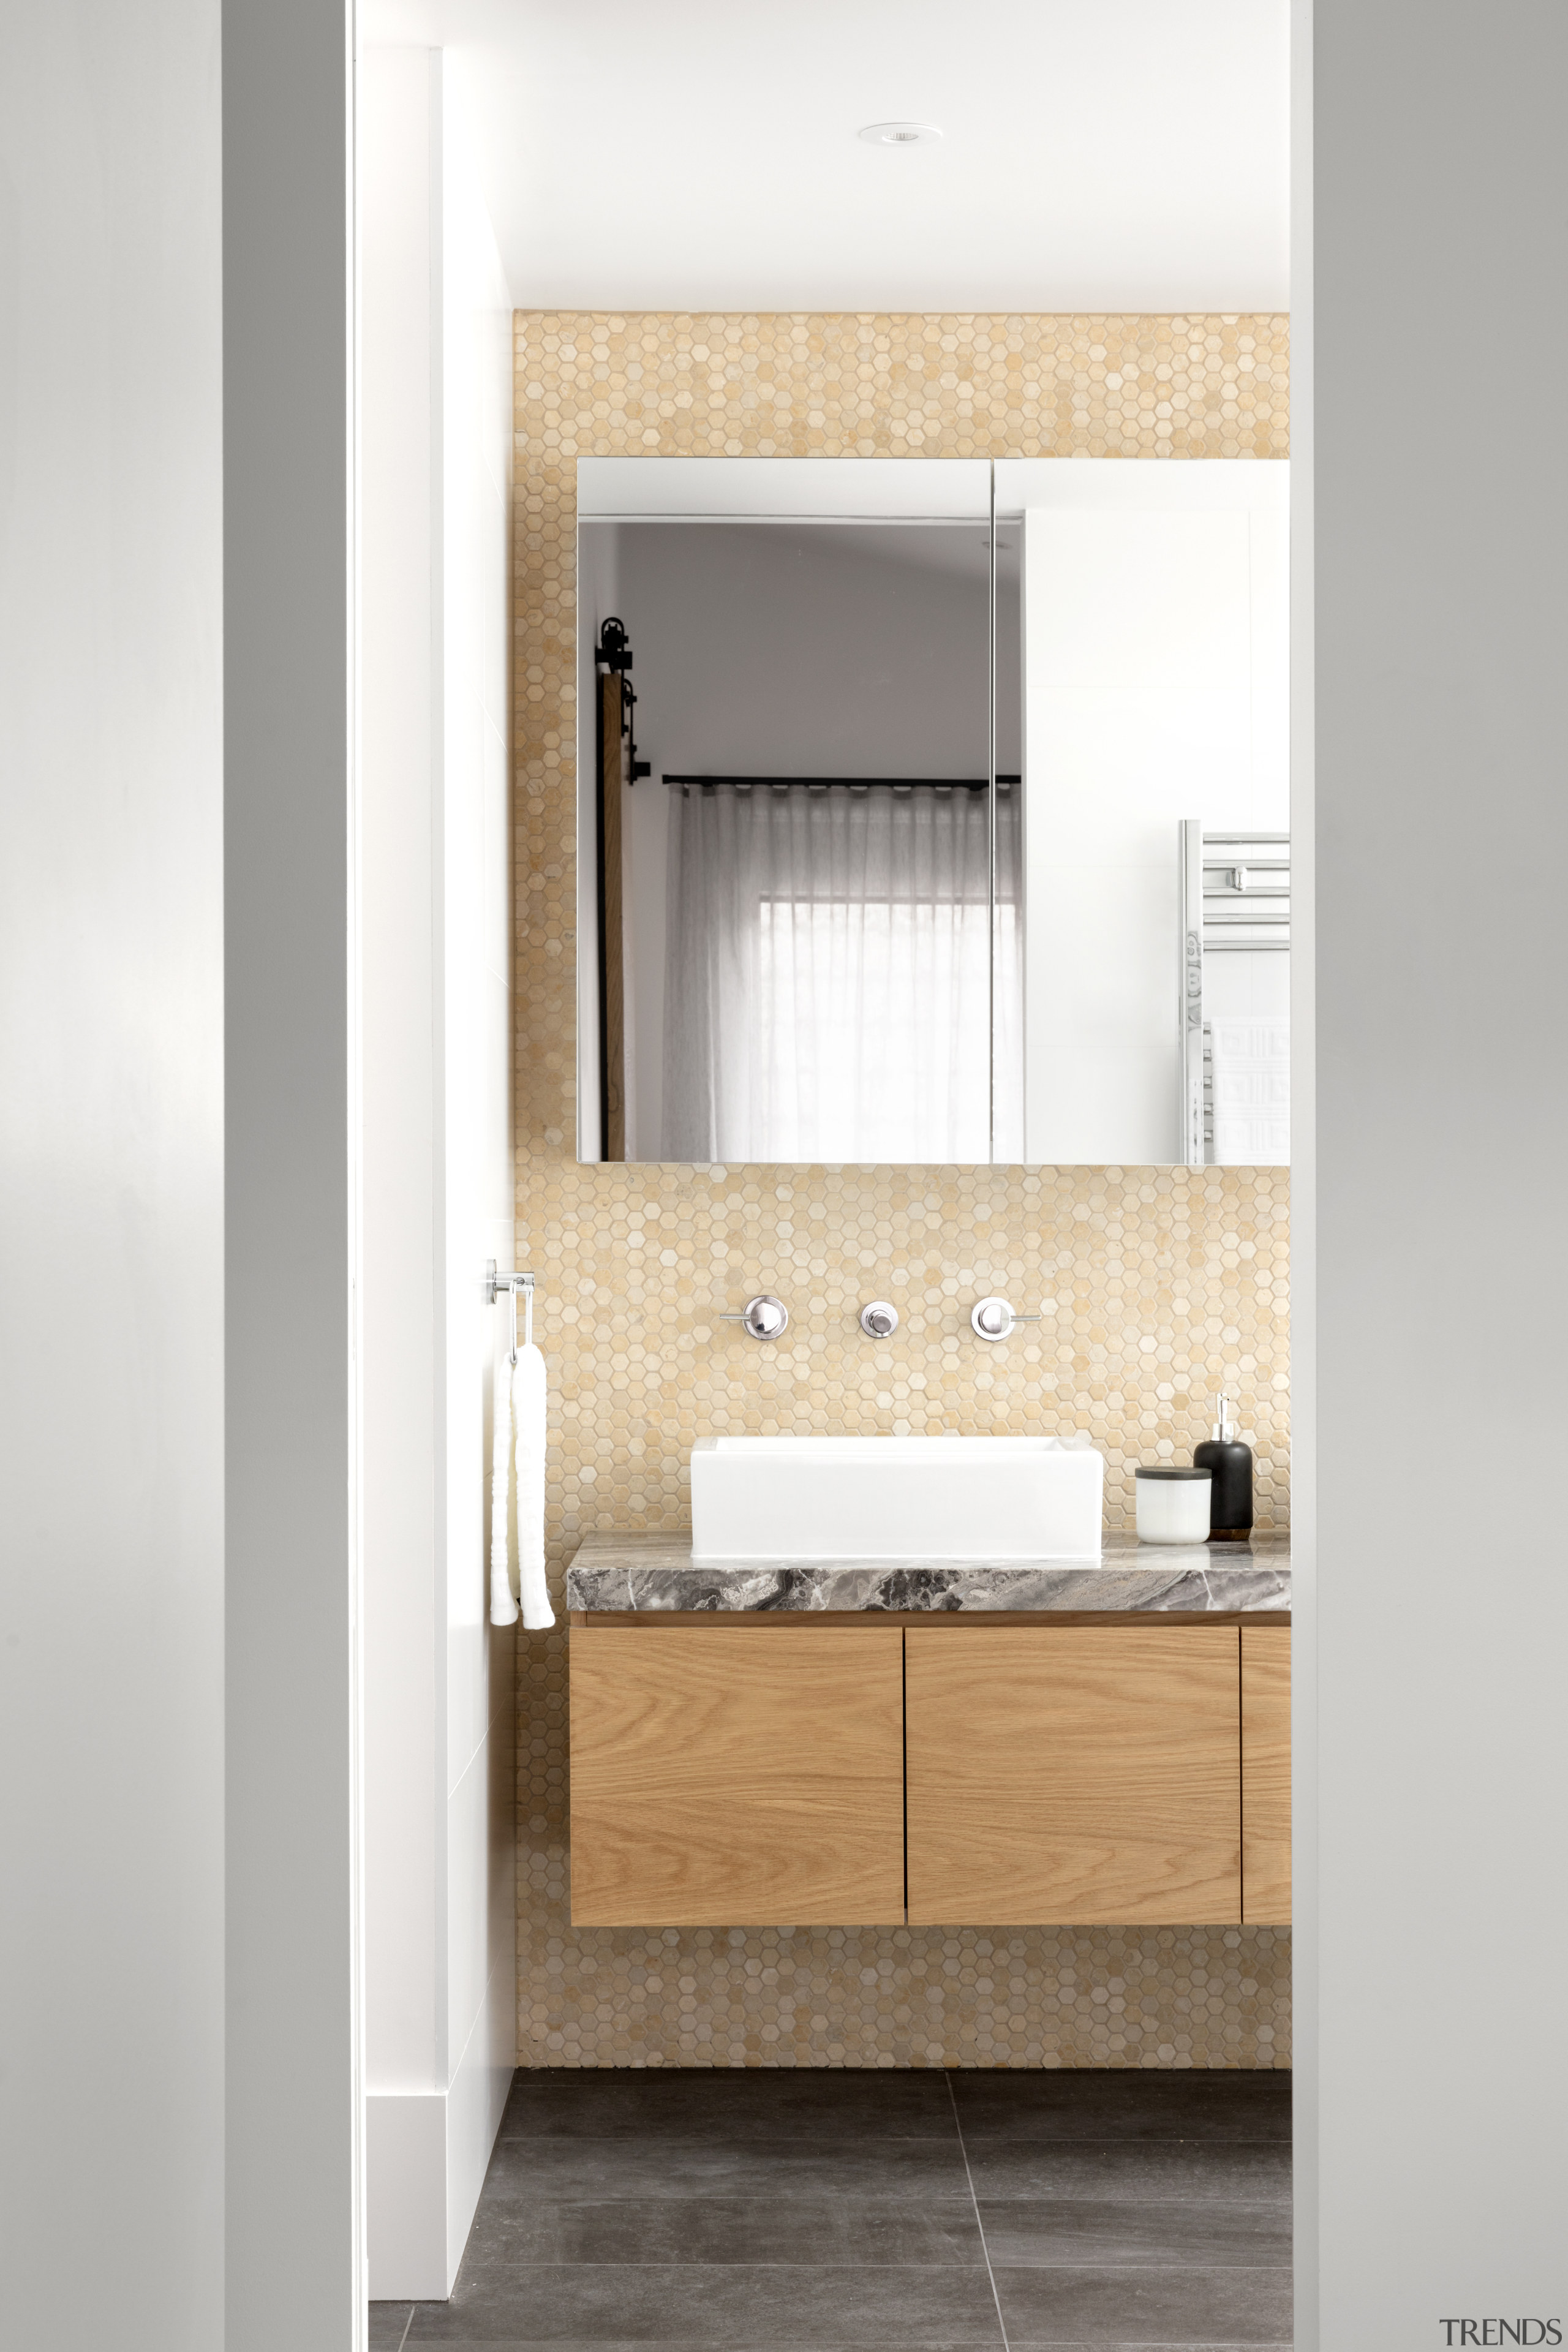 The honeycomb tile feature wall in the ensuite architecture, bathroom, floor, flooring, vanity unit, taps, Mcmaon & Nerlich